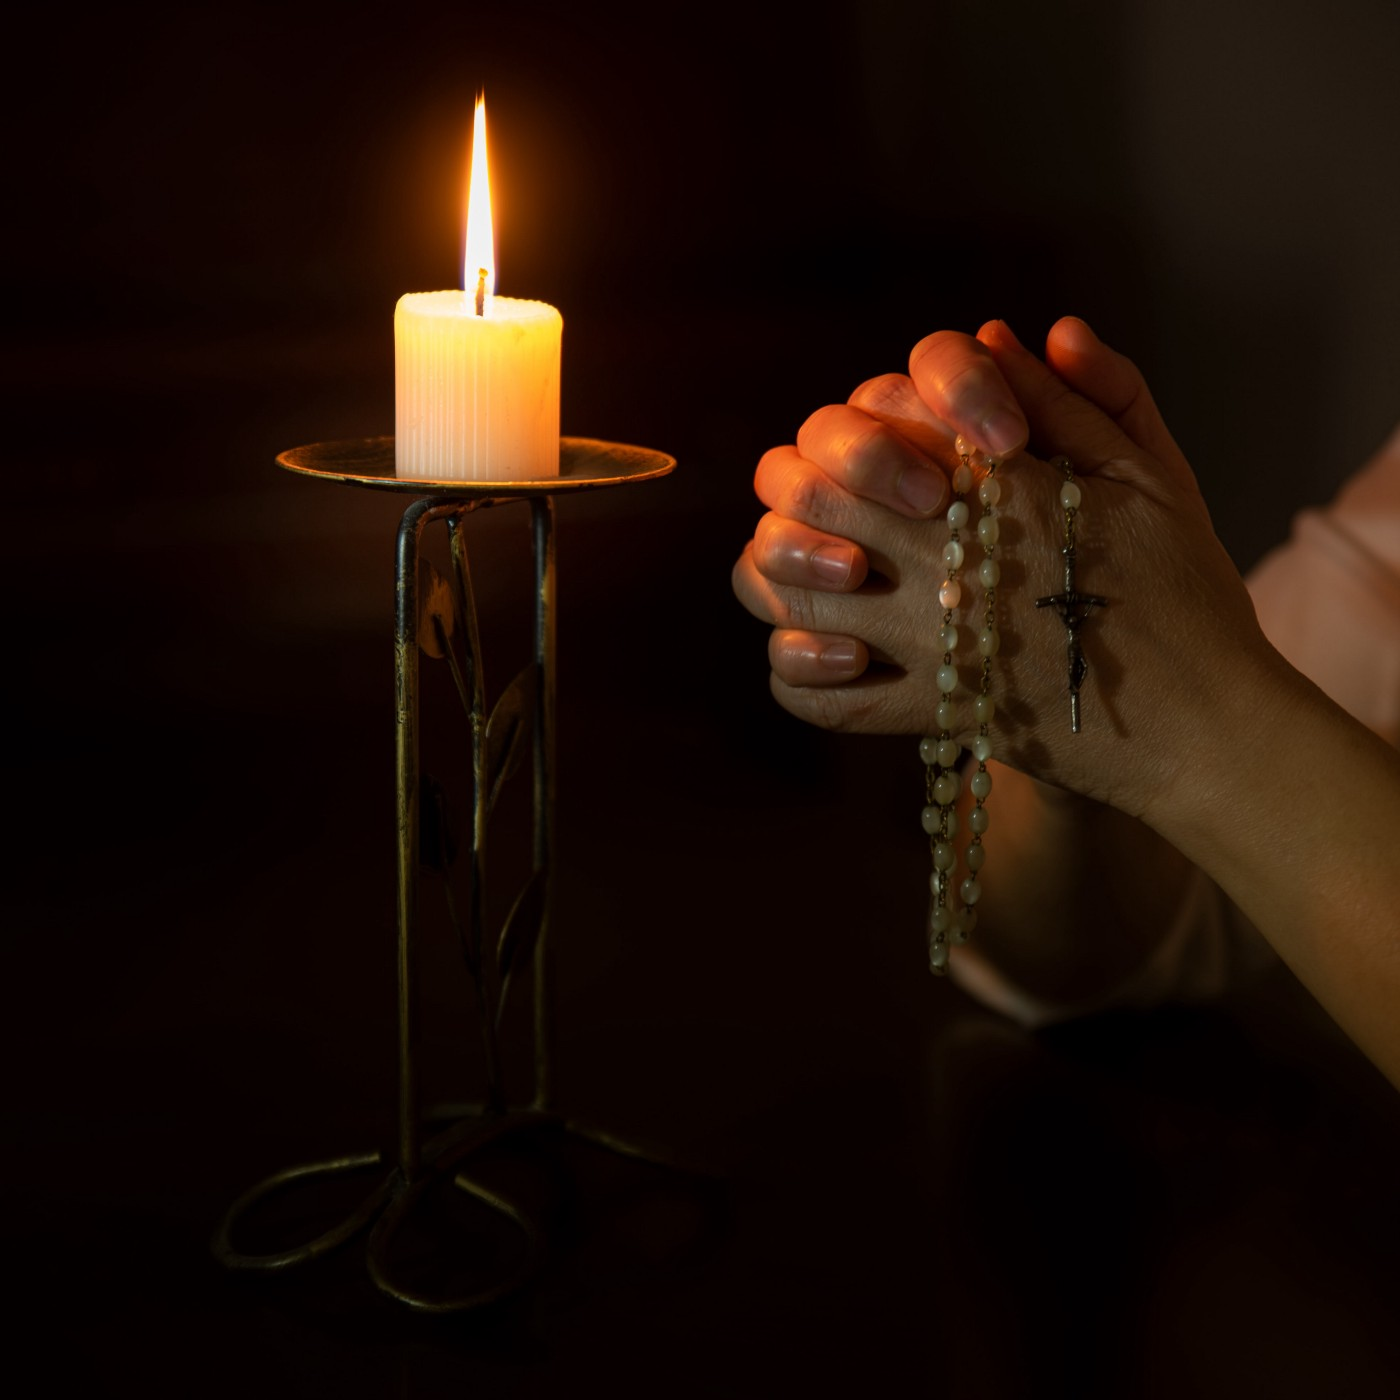 Person praying rosary on right and lit candle on left